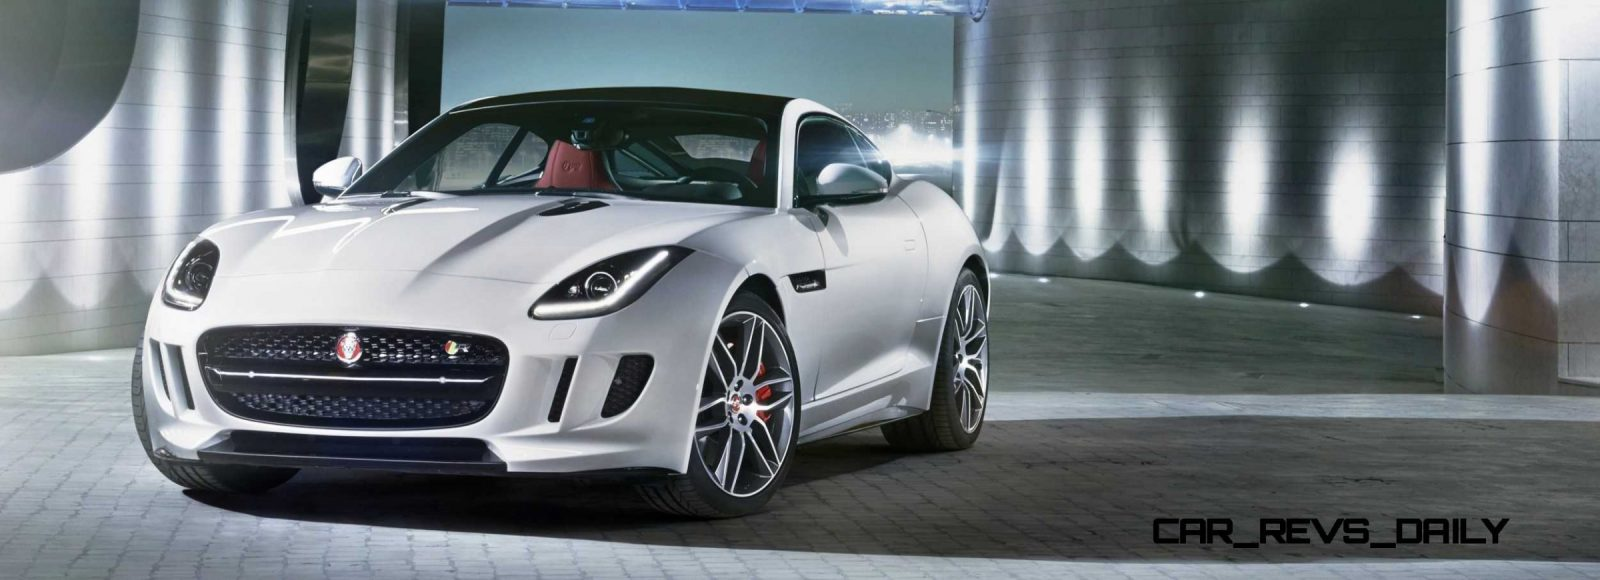 Jaguar Makes a WINNER!  2015 F-type R Coupe Debut27